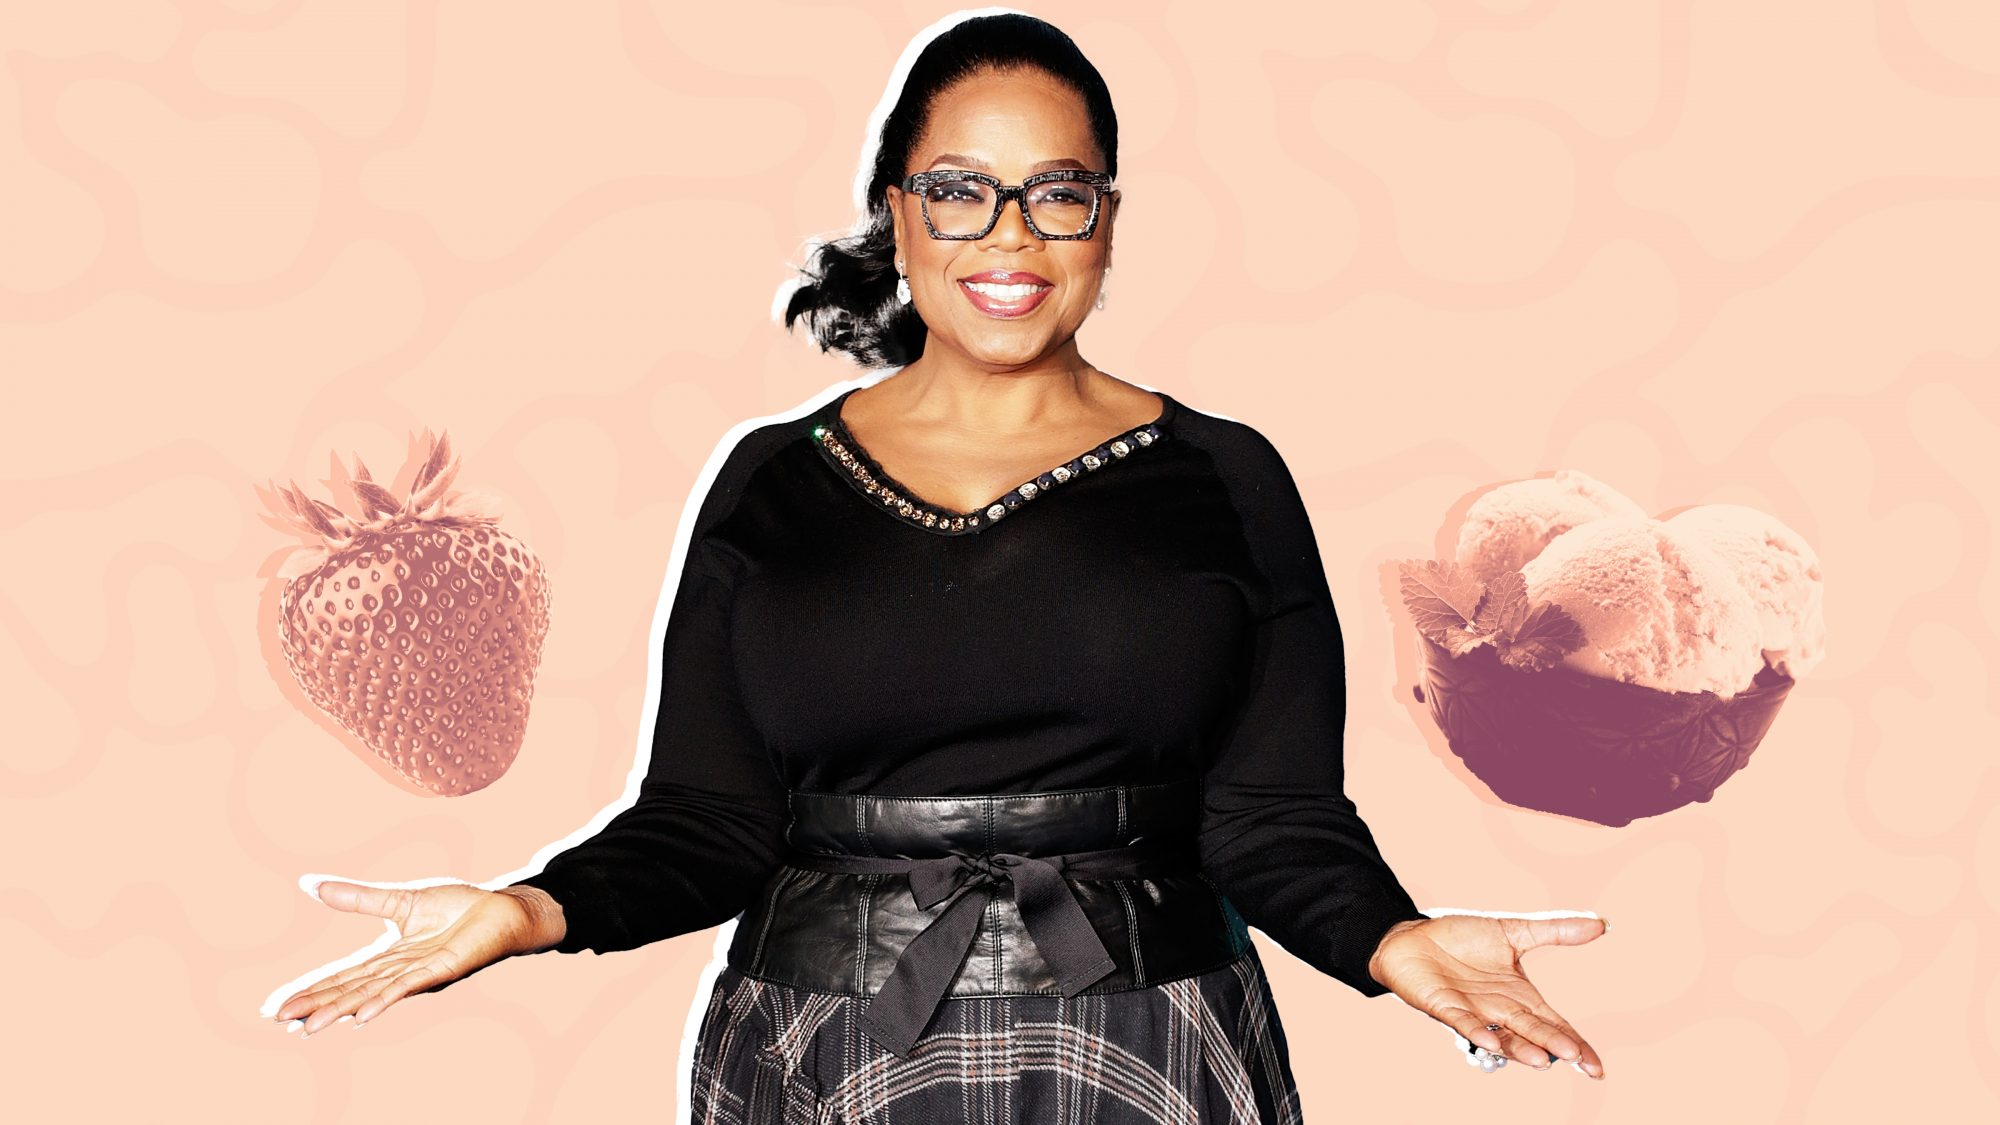 This-Genius-Oprah-Winfrey-Approved-Appliance-Turns-Fruit-Into-Ice-Cream-and-It's-Only-$50-On-Amazon-GettyImages-931507470